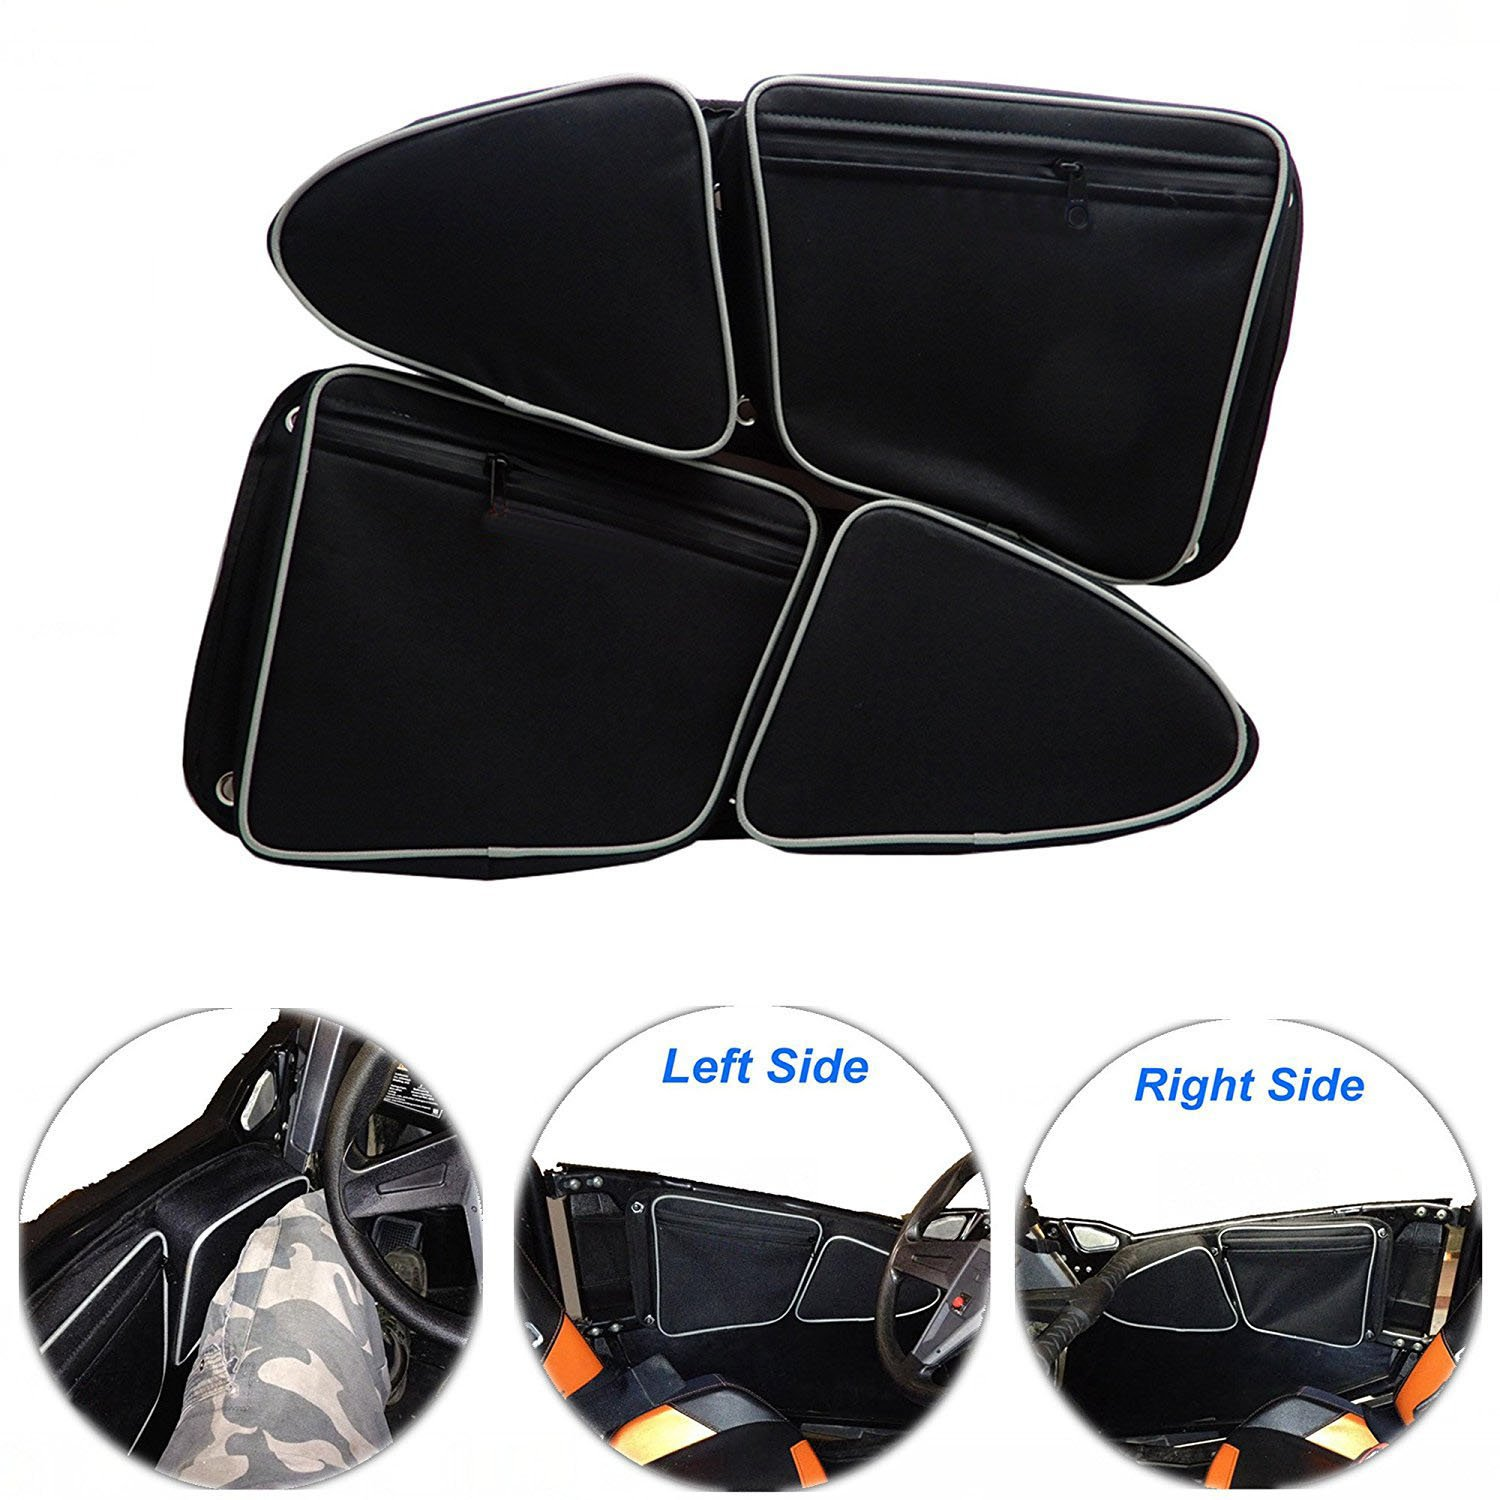 EPSILONT Side Door Bags for Polaris RZR XP 1000 900XC S900 Passenger And Driver Side Storage Bag with Knee Protection (SET OF 2)